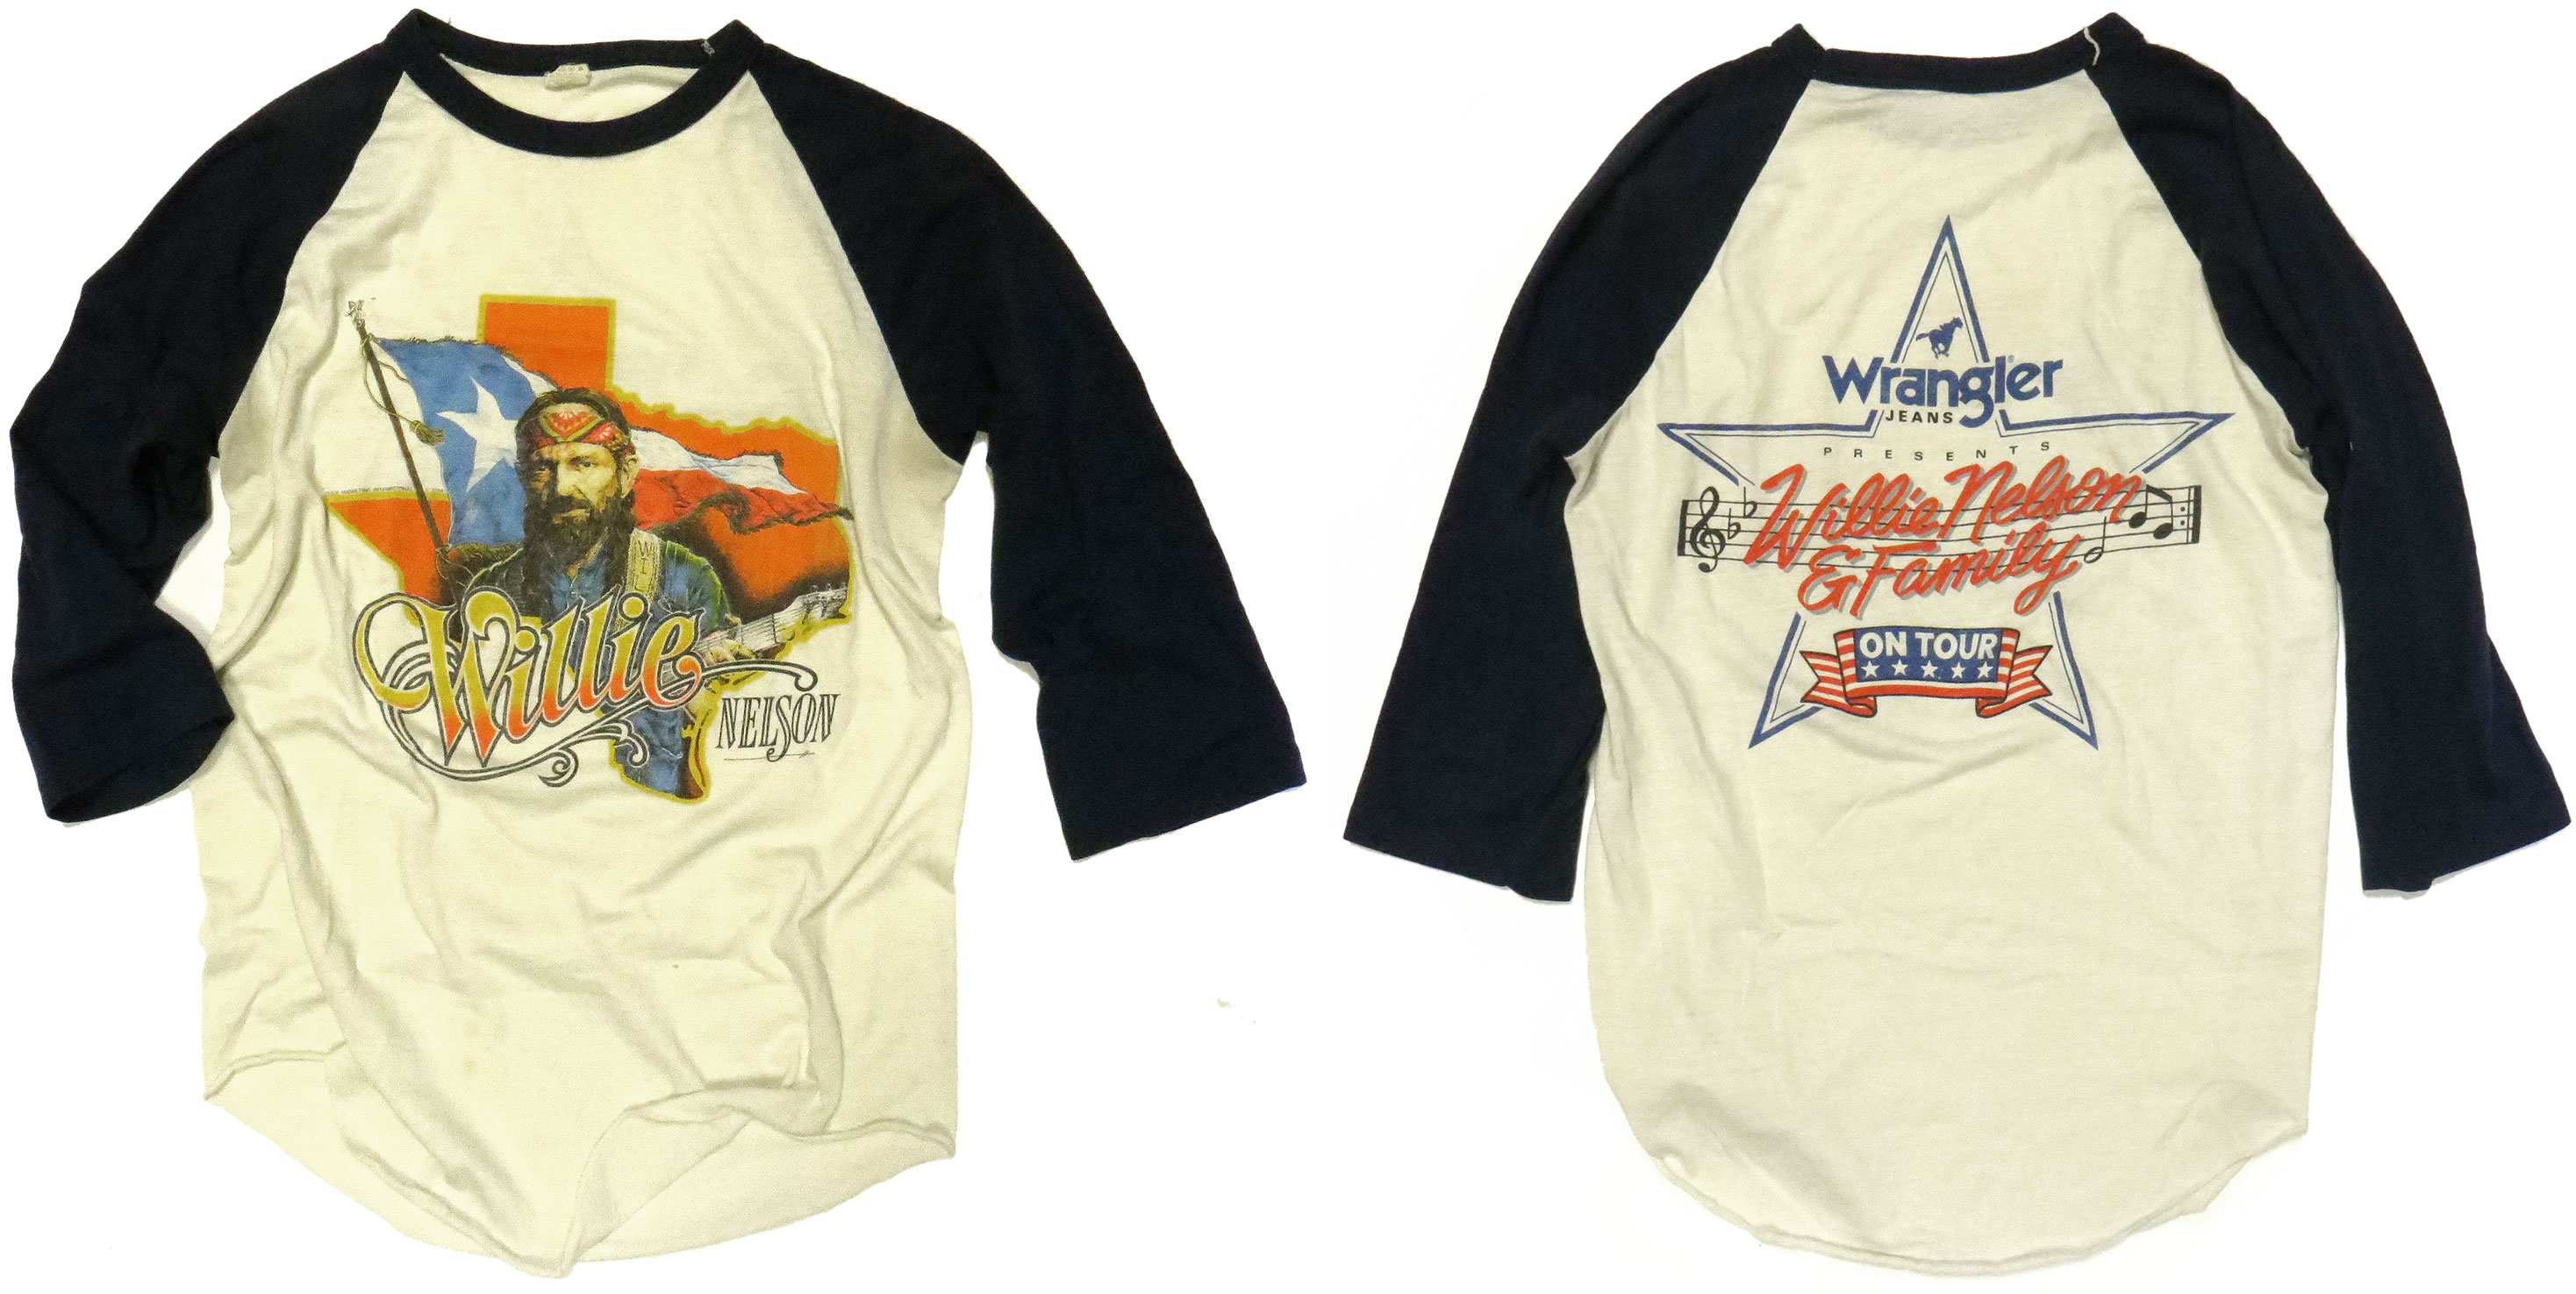 Willie Nelson Concert Tee